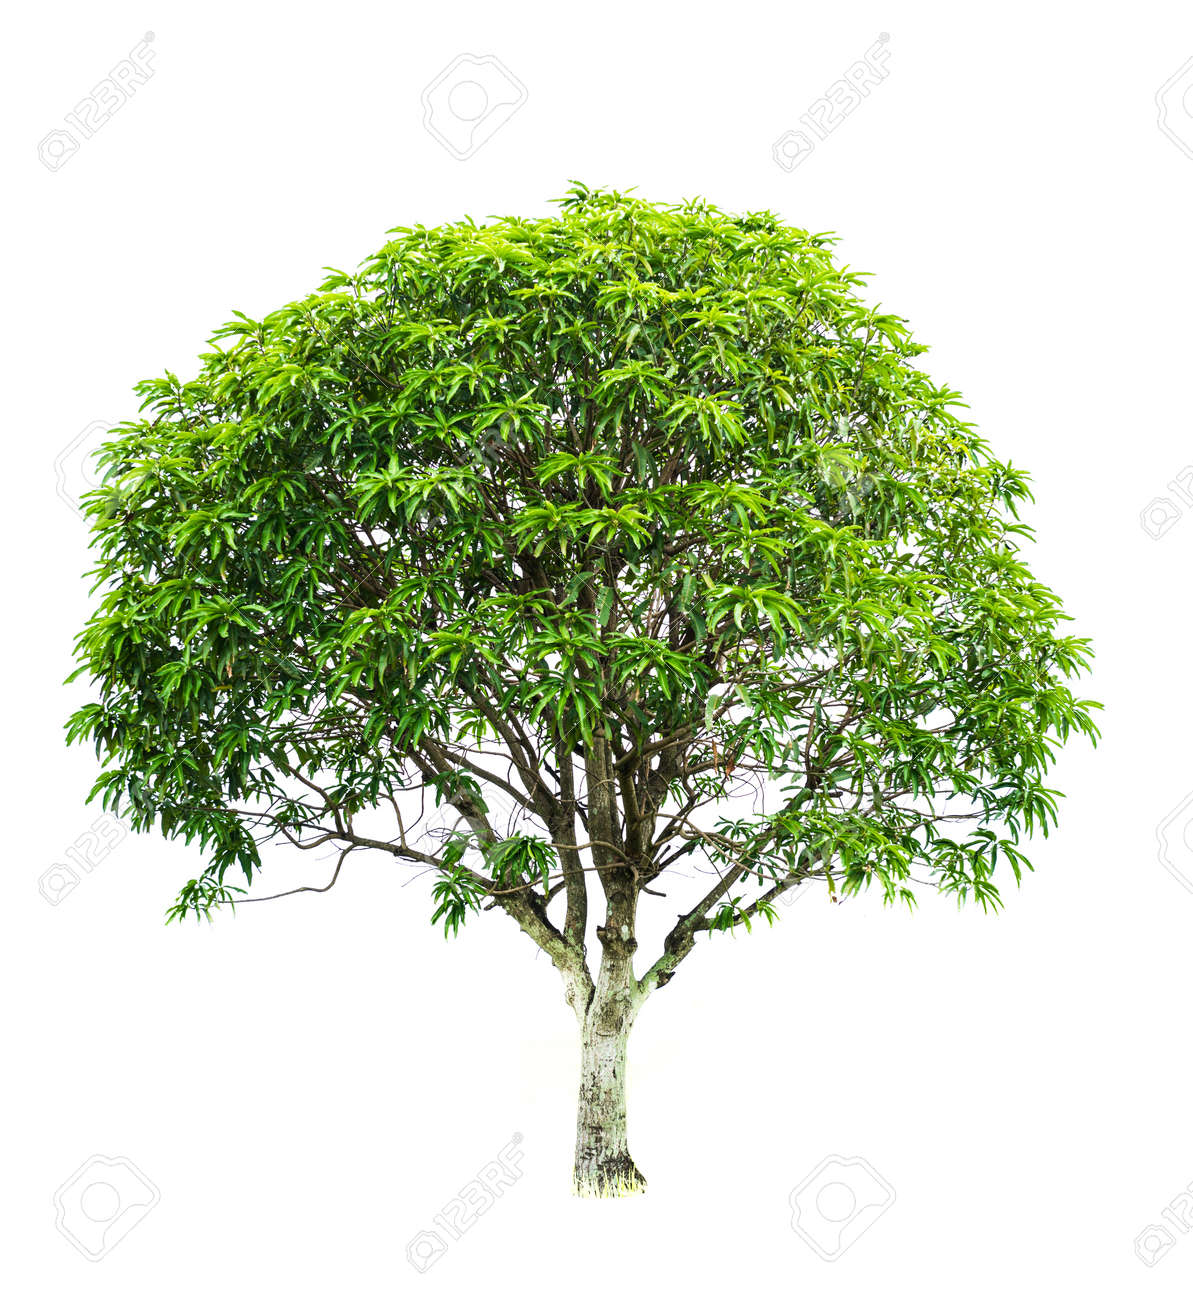 Mango Tree Images Free